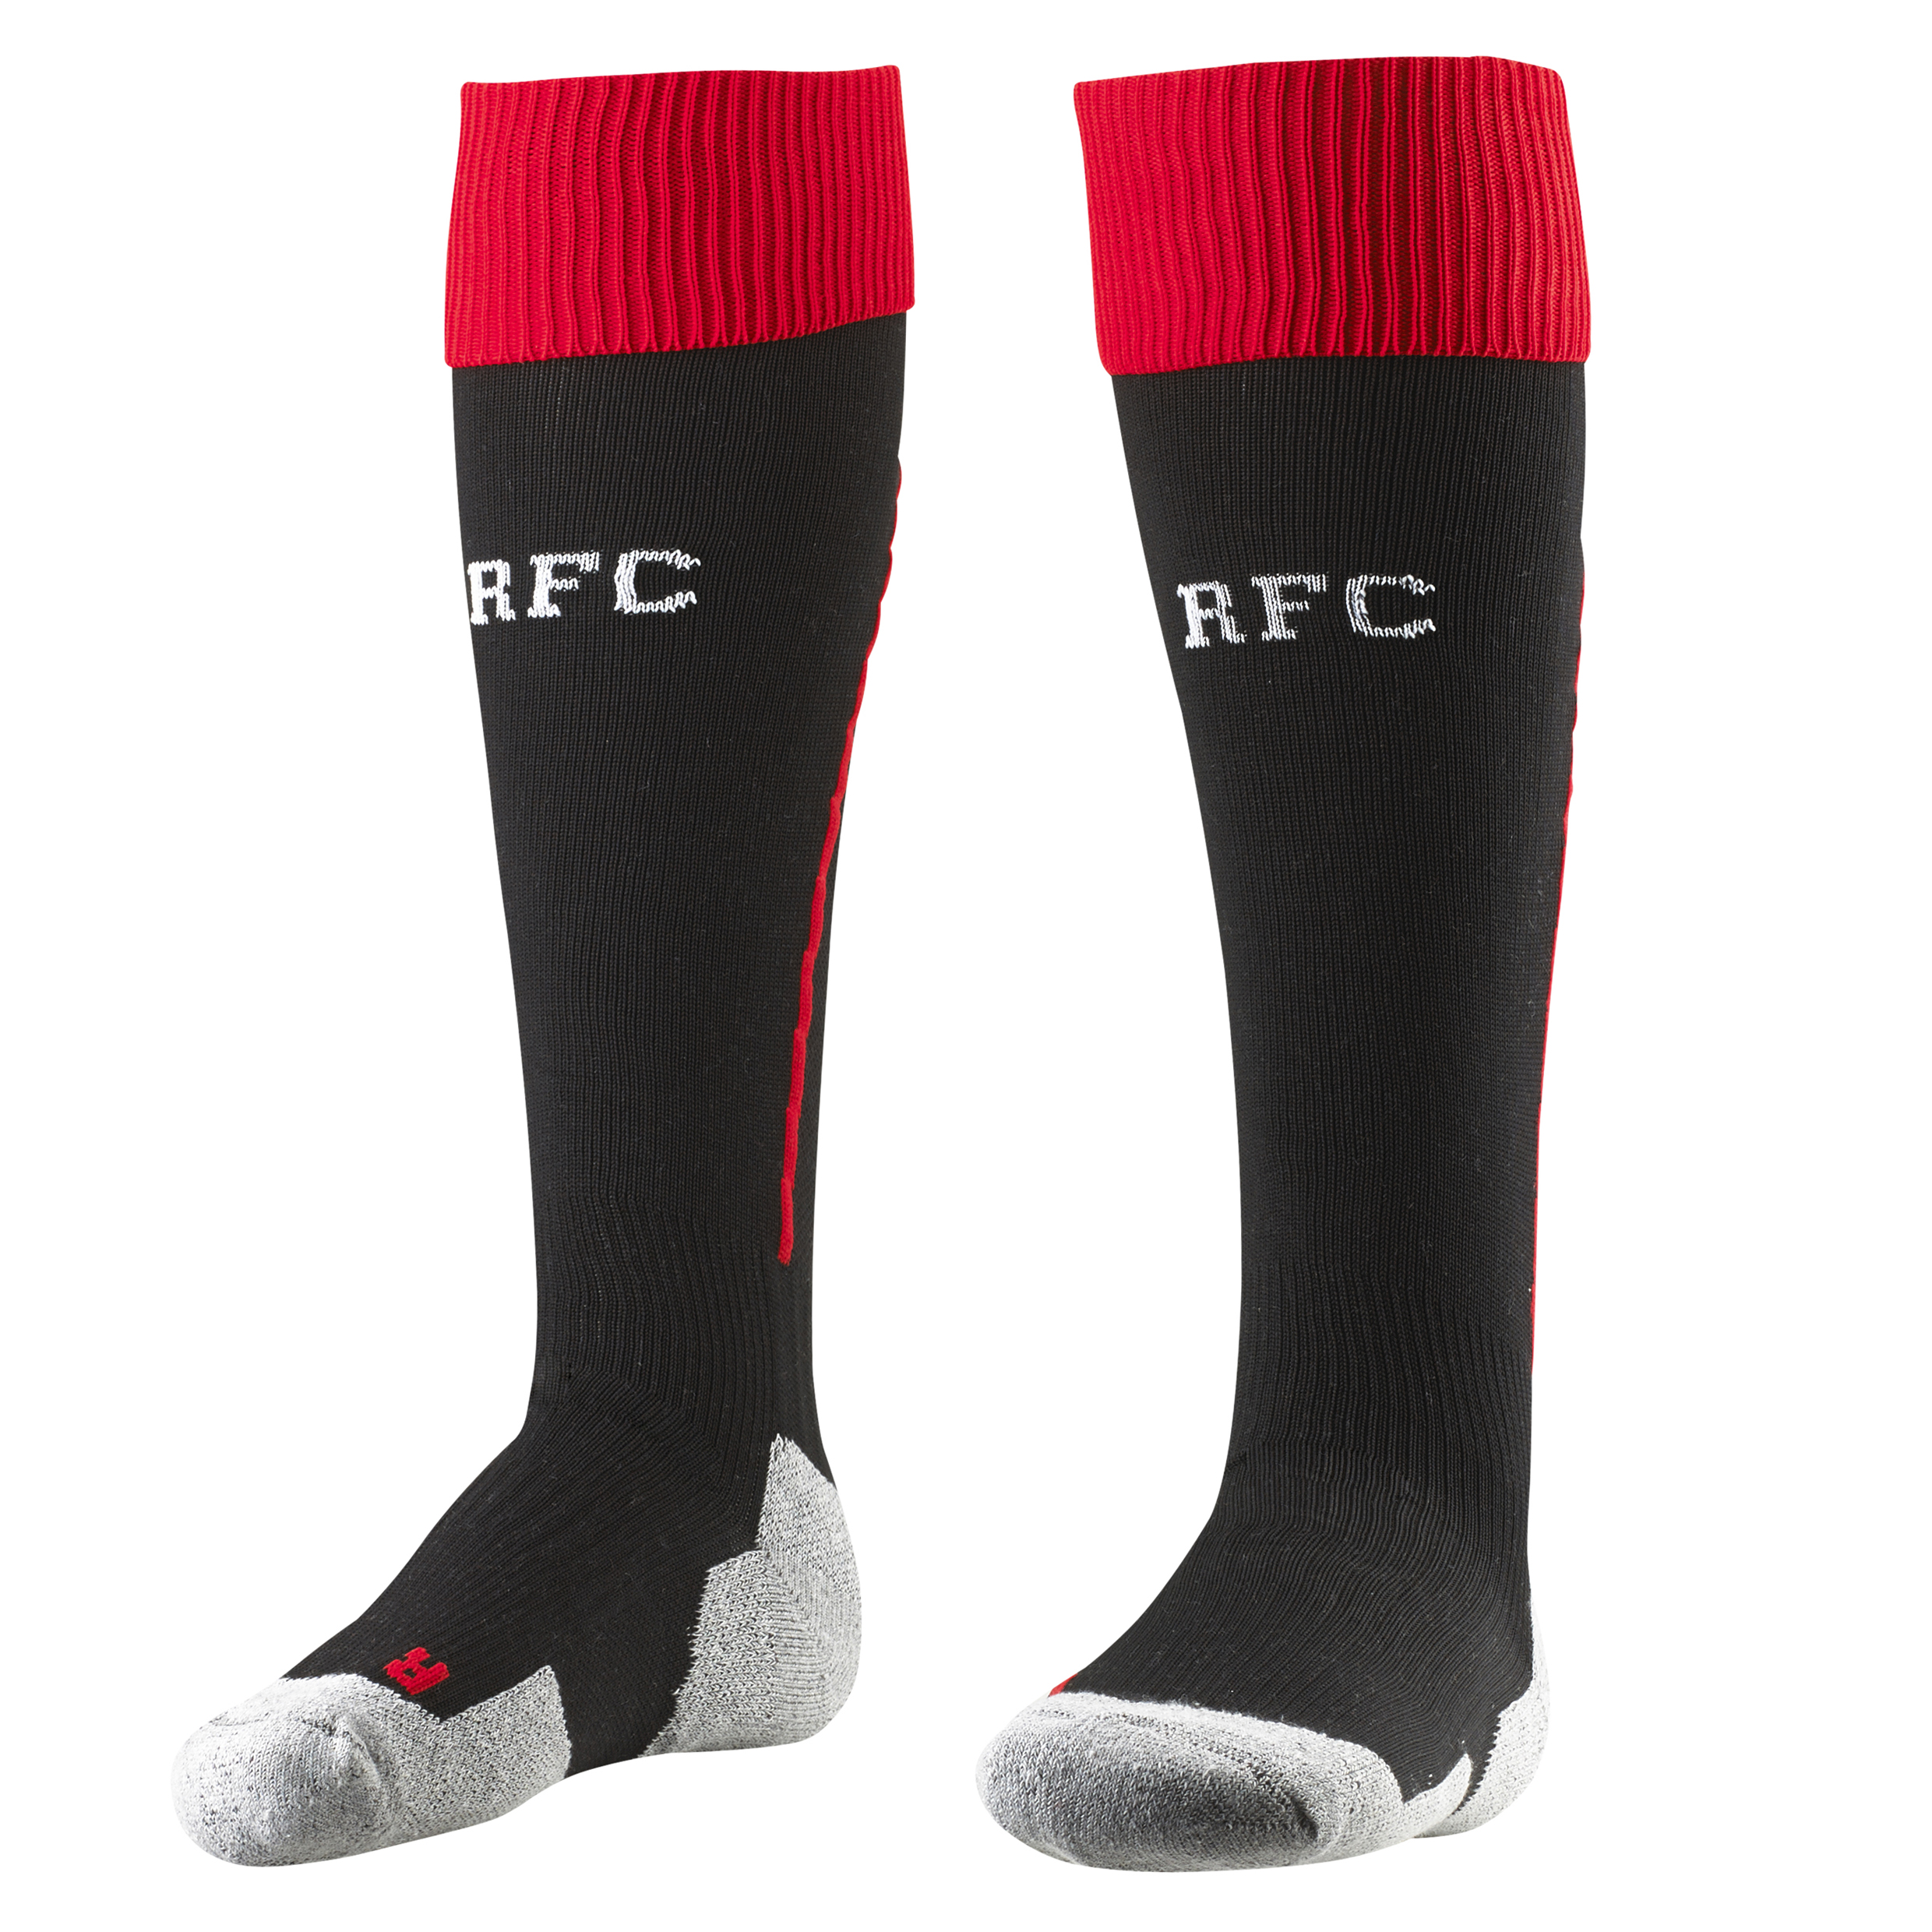 Glasgow Rangers Home Socks 2013/14